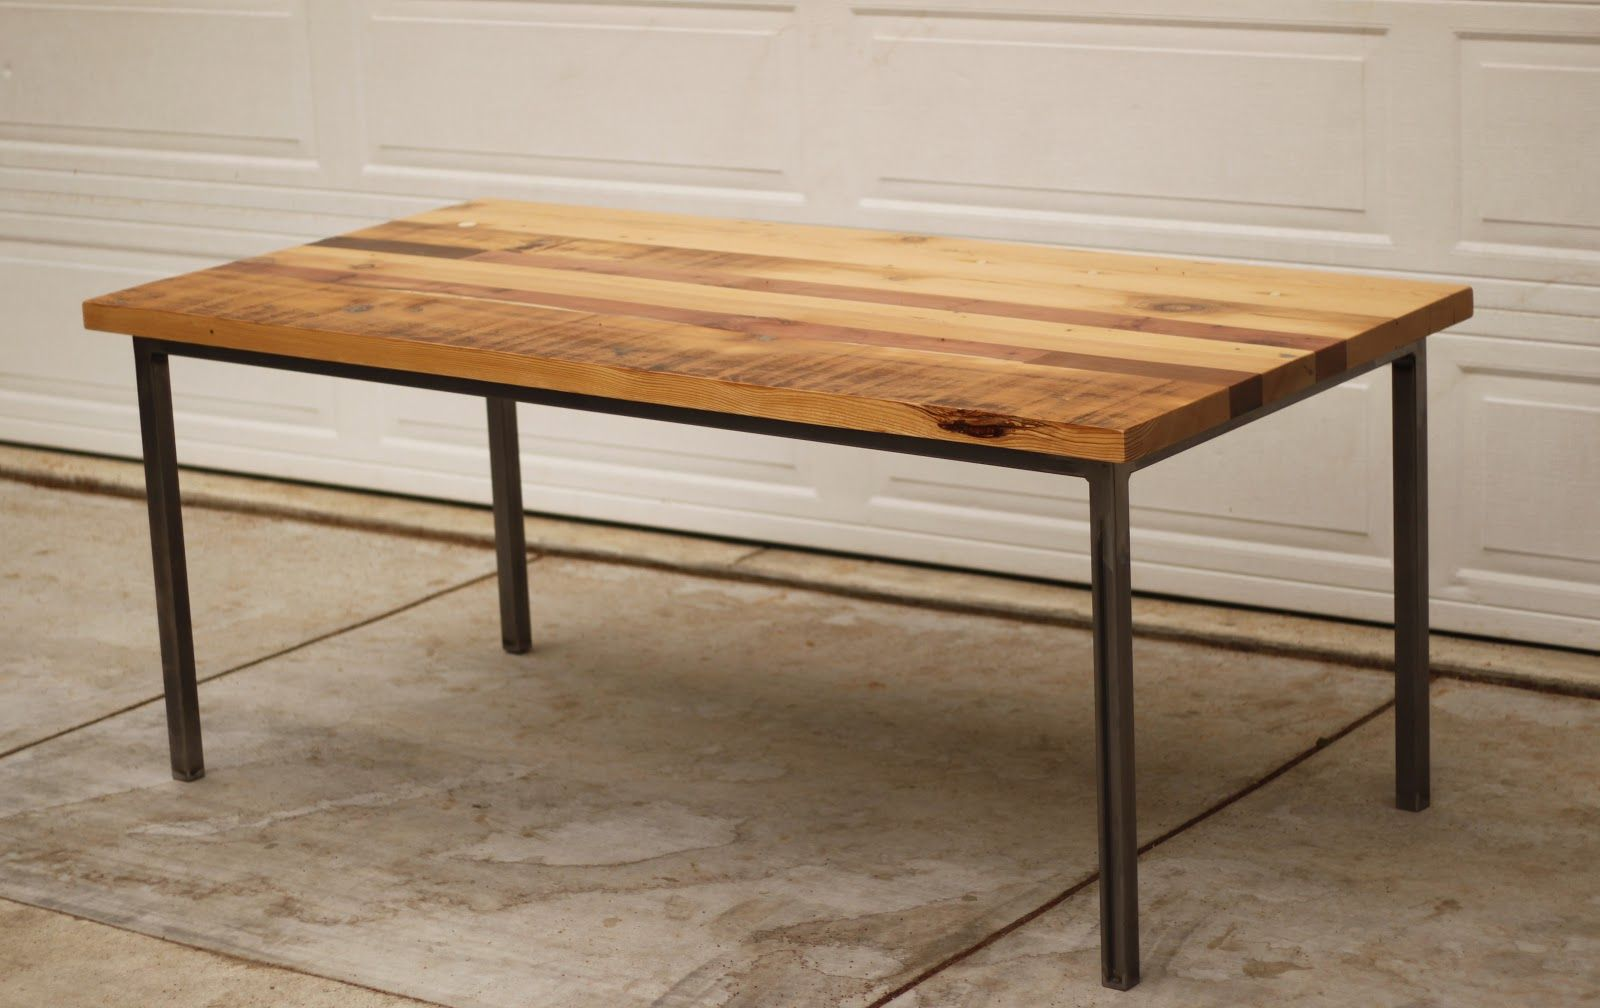 Dining Table With Metal Legs Rectangular Reclaimed Wood Of ...